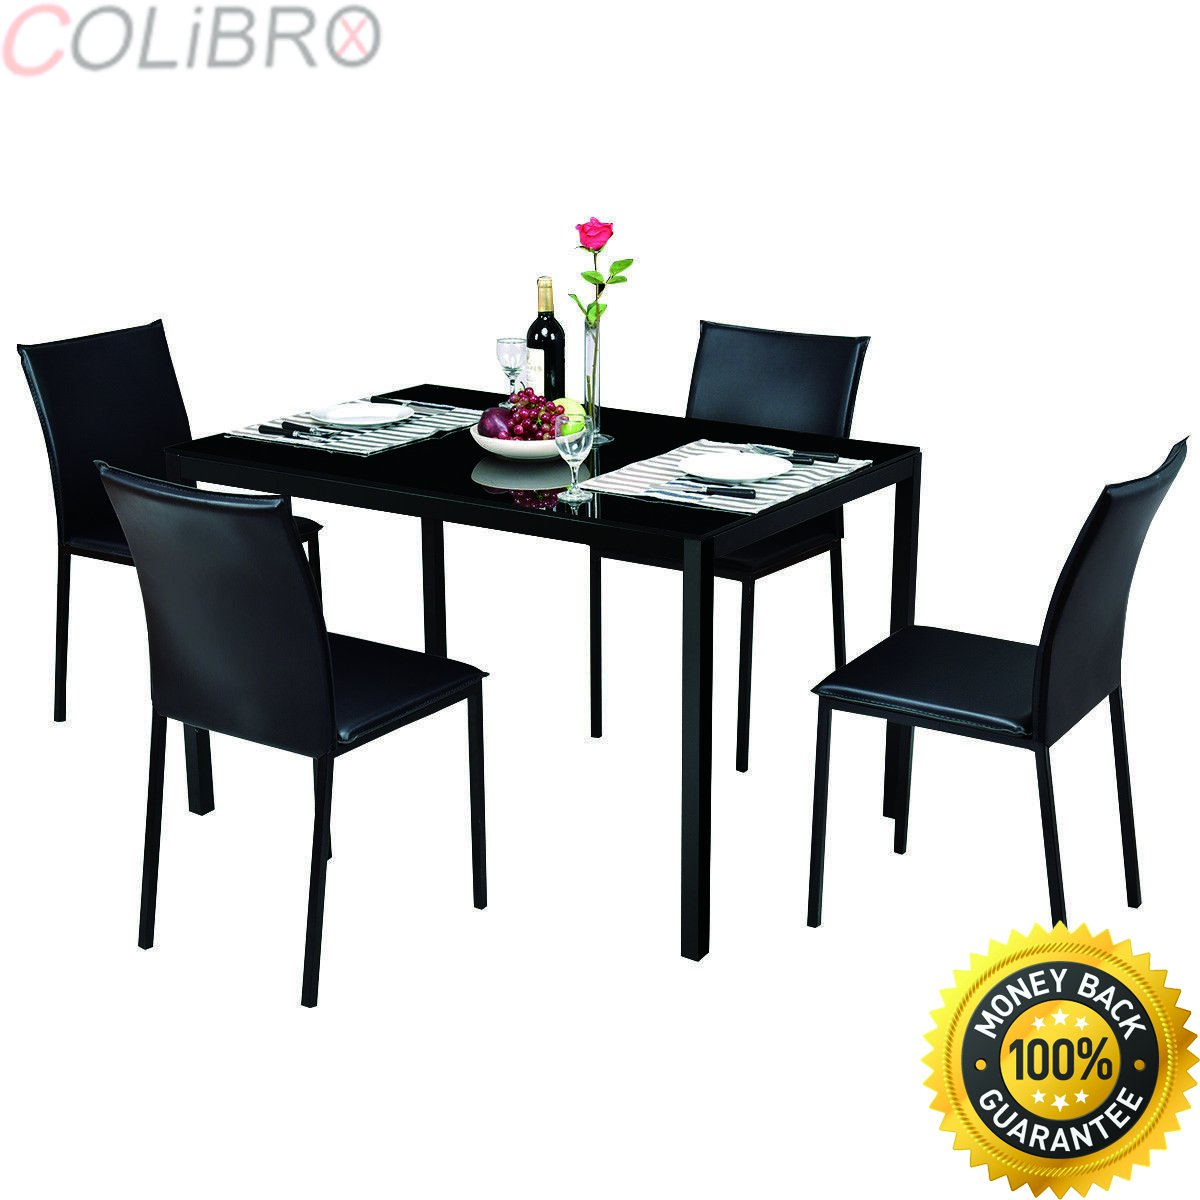 Colibrox 5 piece dining set glass top table and 4 pu chairs kitchen breakfast furniture glass top dining table set 4 chairs rectangular glass dining